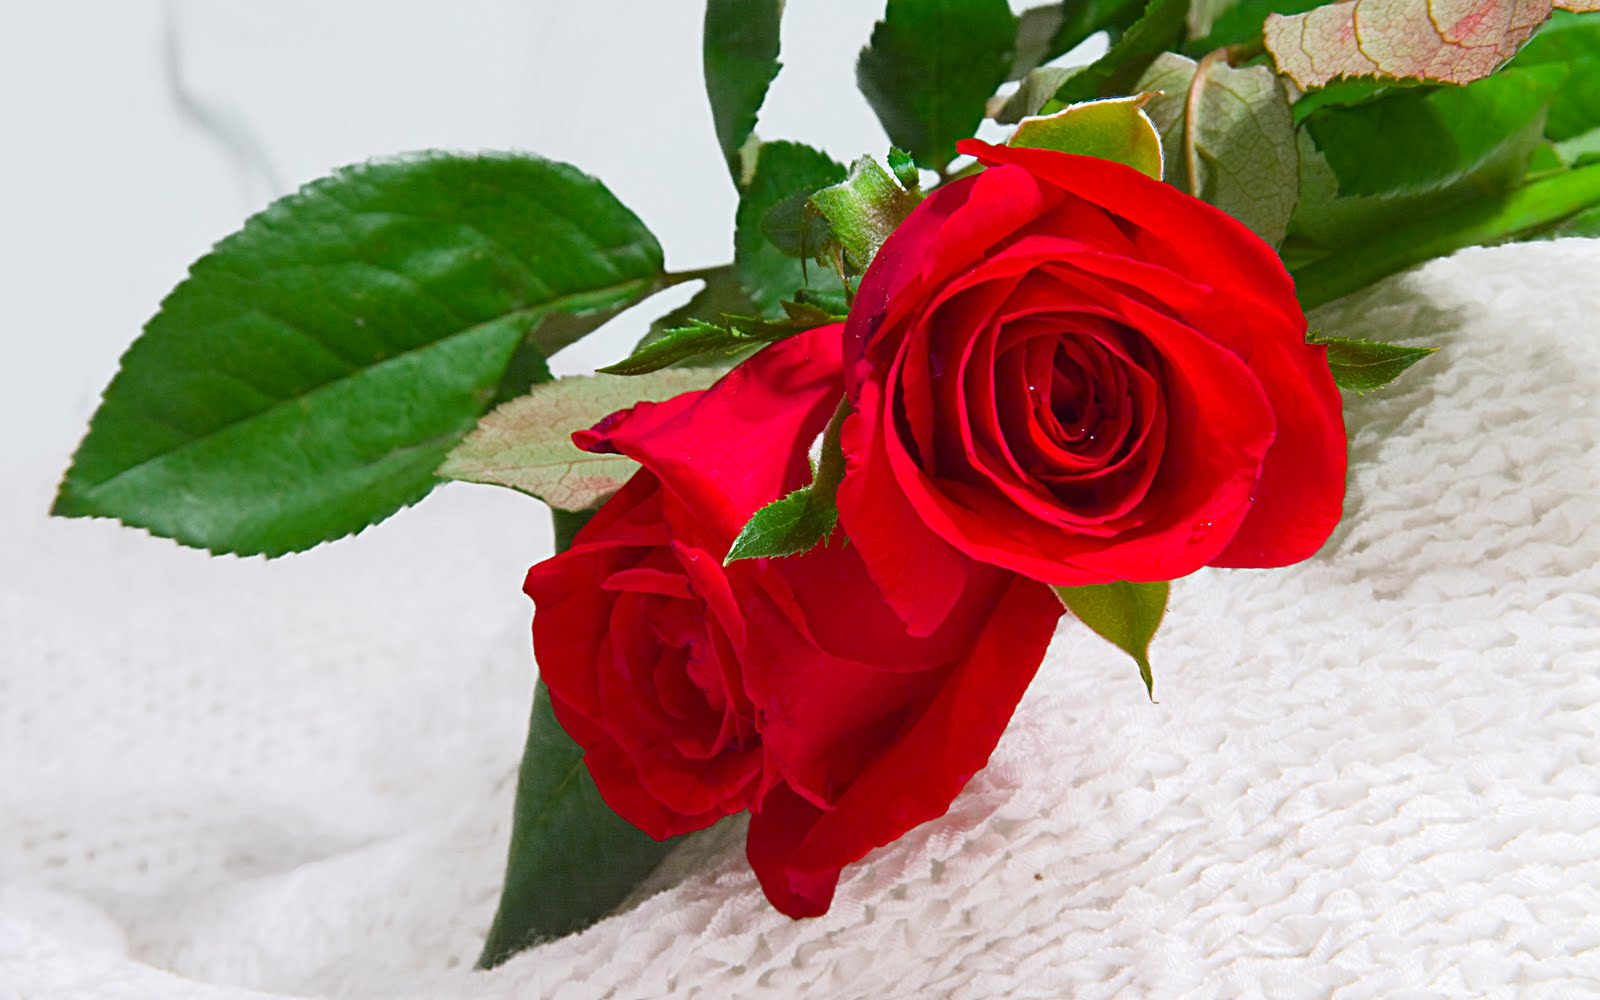 Red roses wallpaper wallpaper wide hd - Red rose flower hd images ...